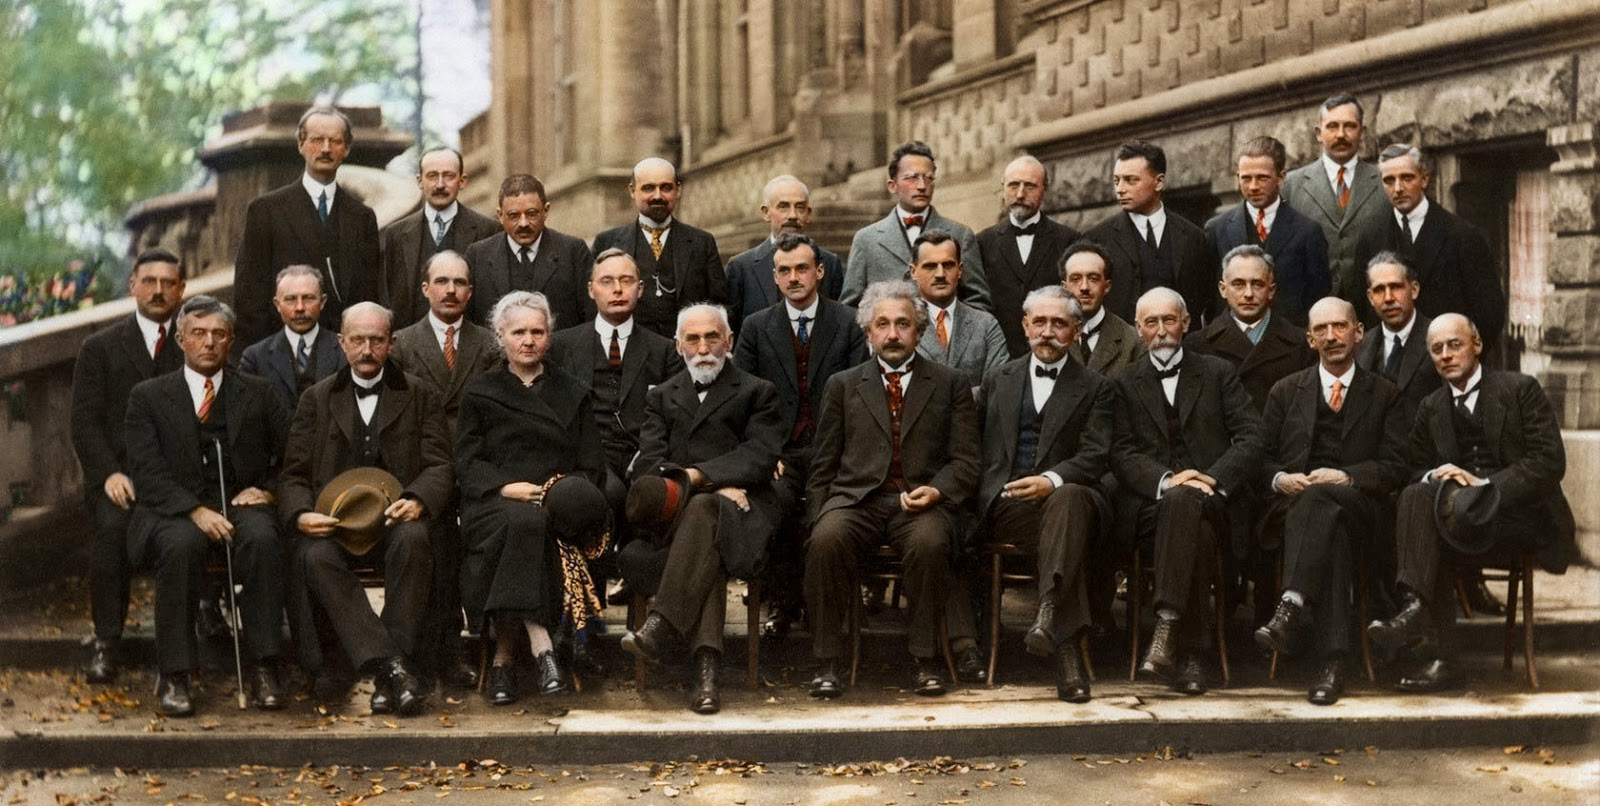 The Solvay Conference (colorized version).